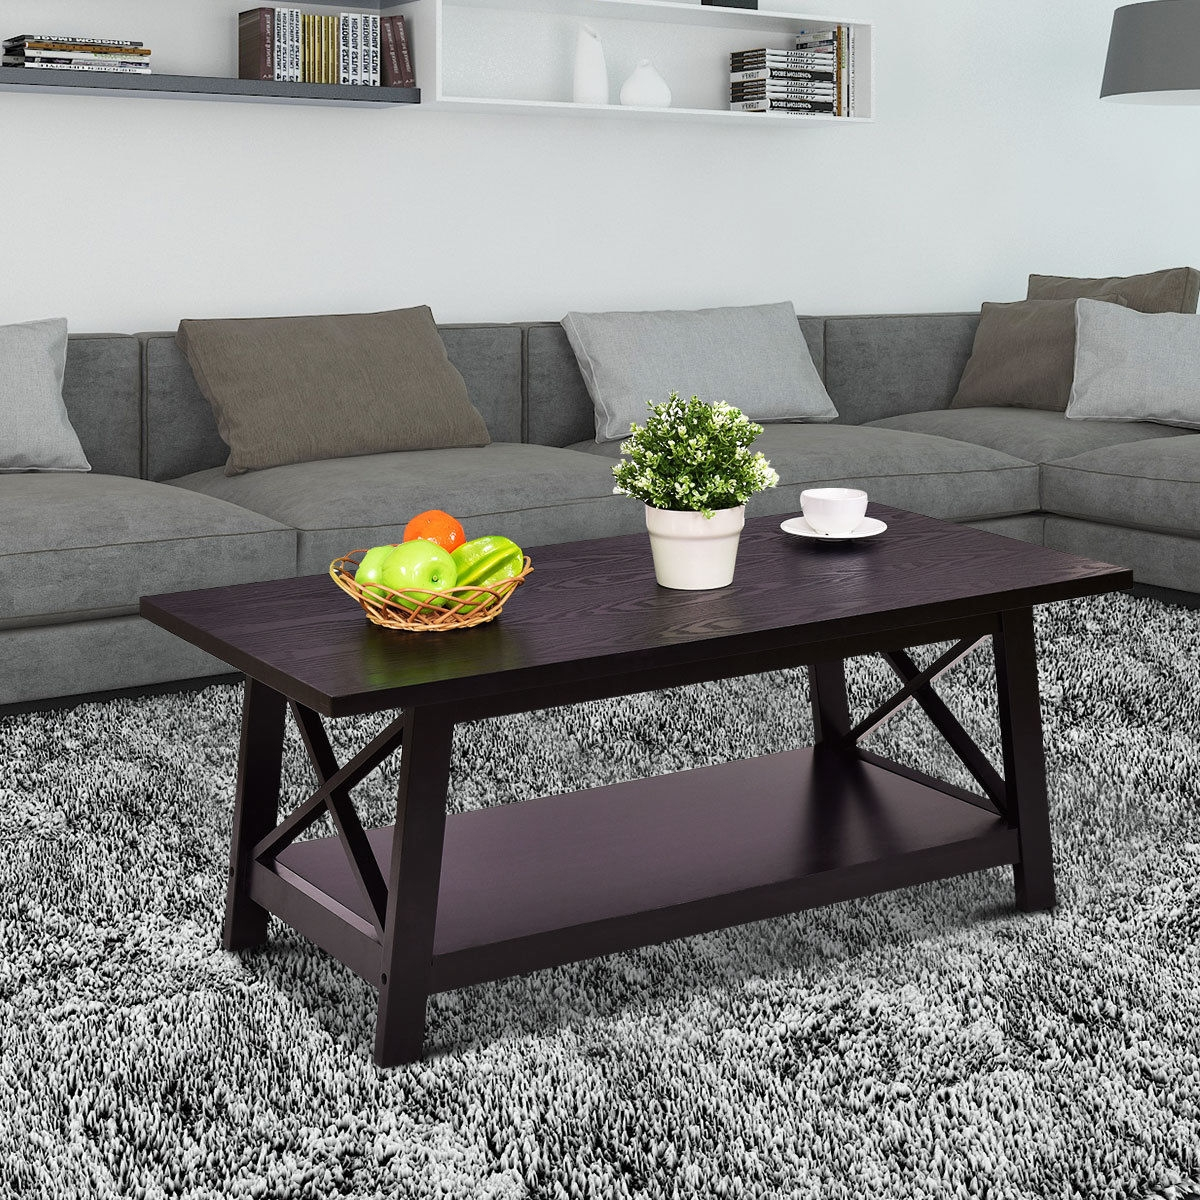 Durable Rectangular Coffee Table with Storage Shelf